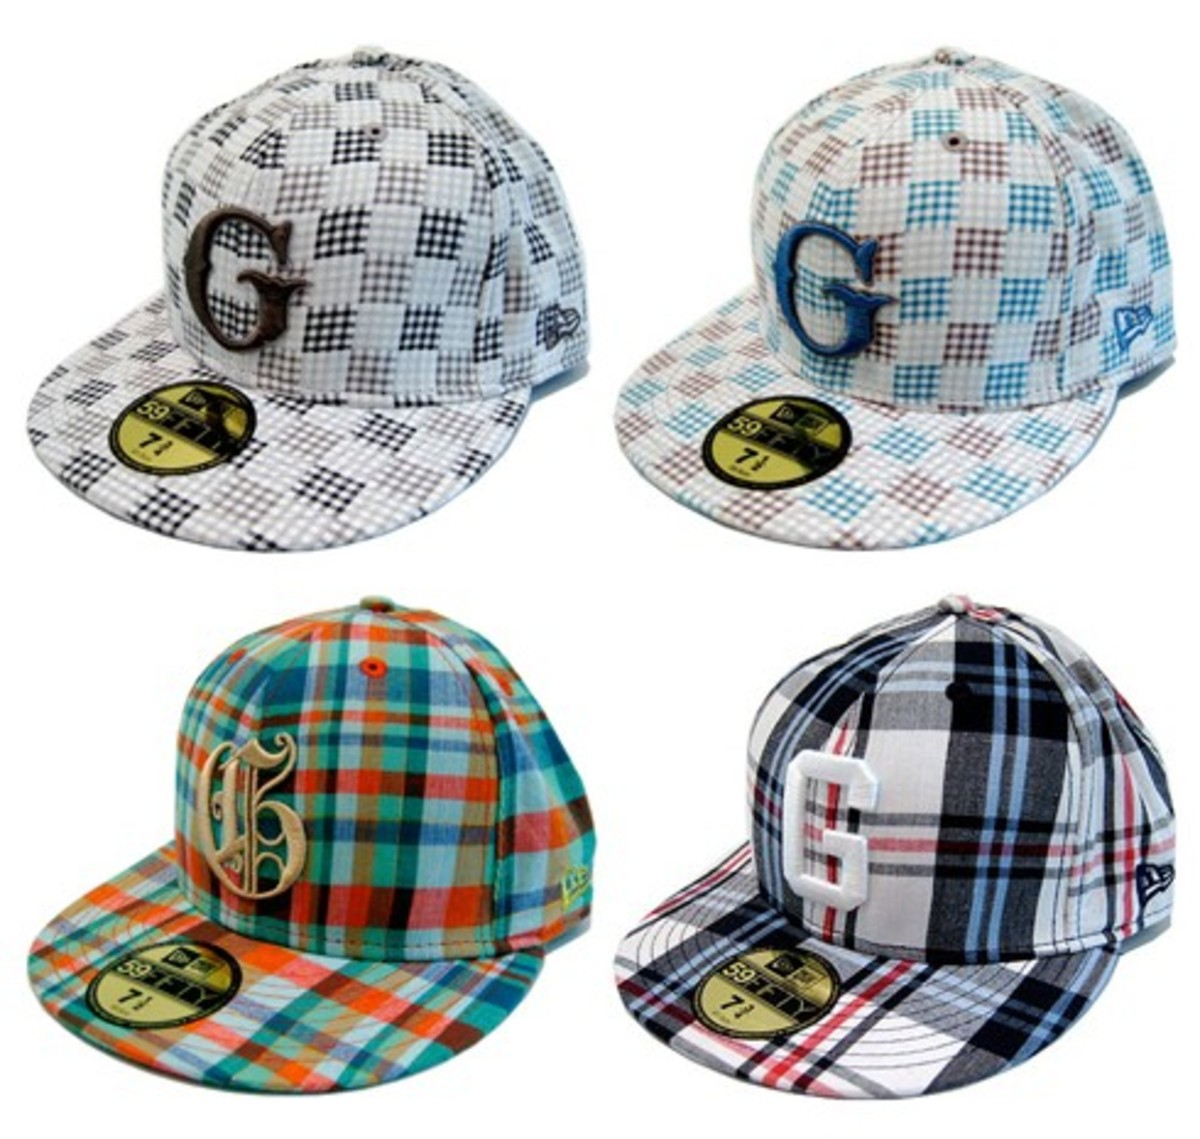 GOODS x New Era - 2008 Summer Cap Collection